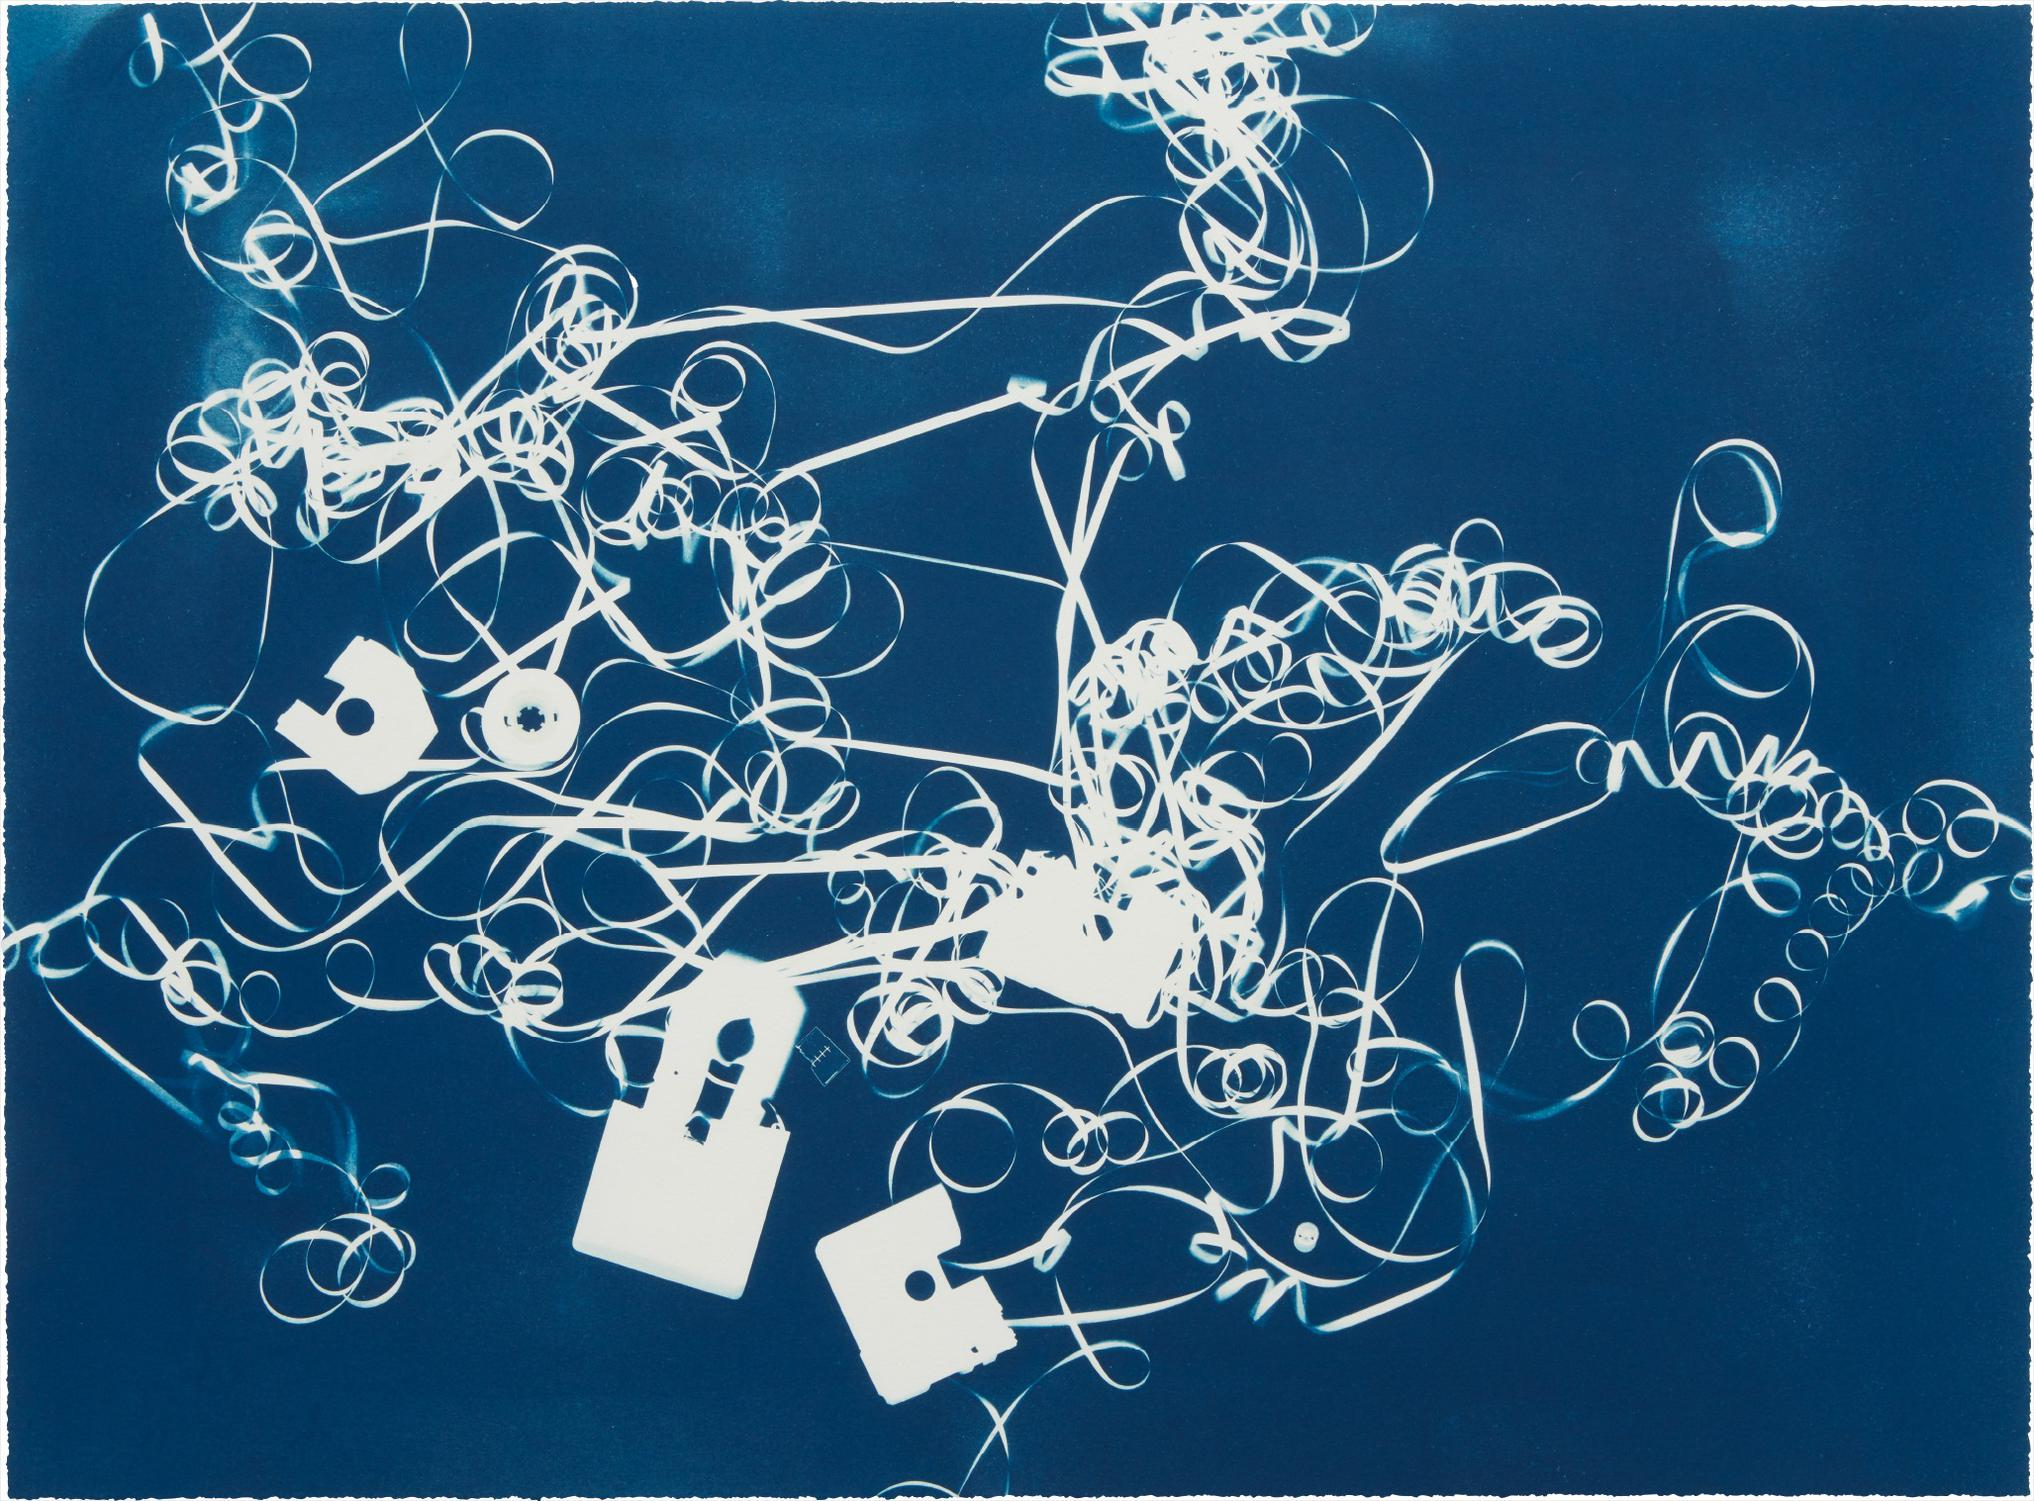 Christian Marclay-Untitled (Songs)-2007